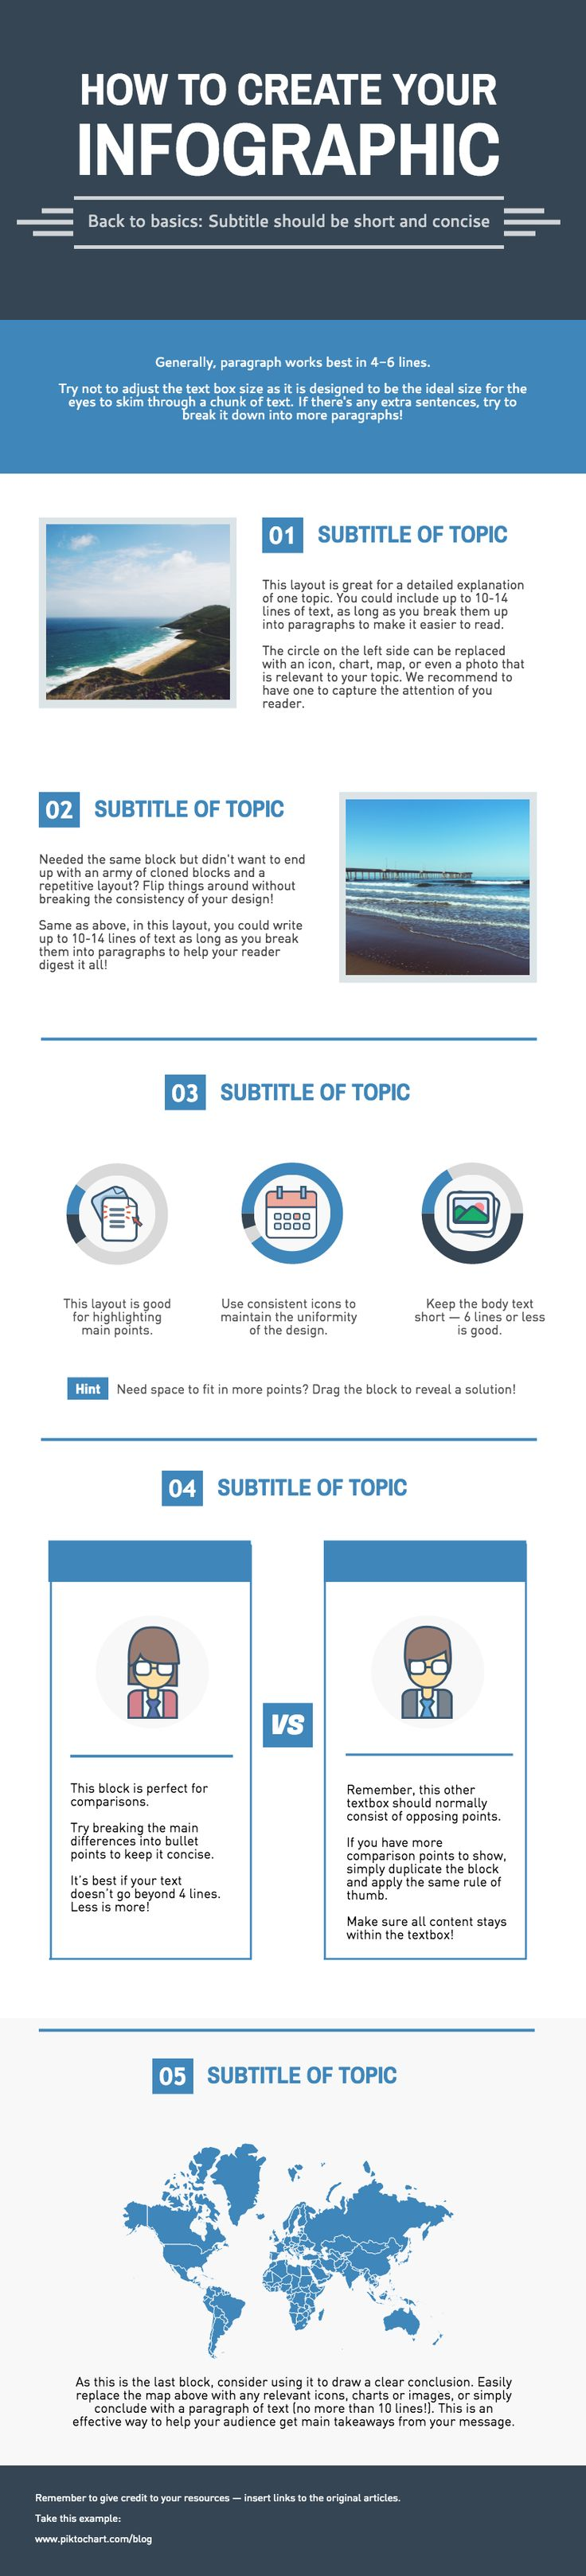 best ideas about infographic templates 17 best ideas about infographic templates create an infographic how to create infographics and infographics design